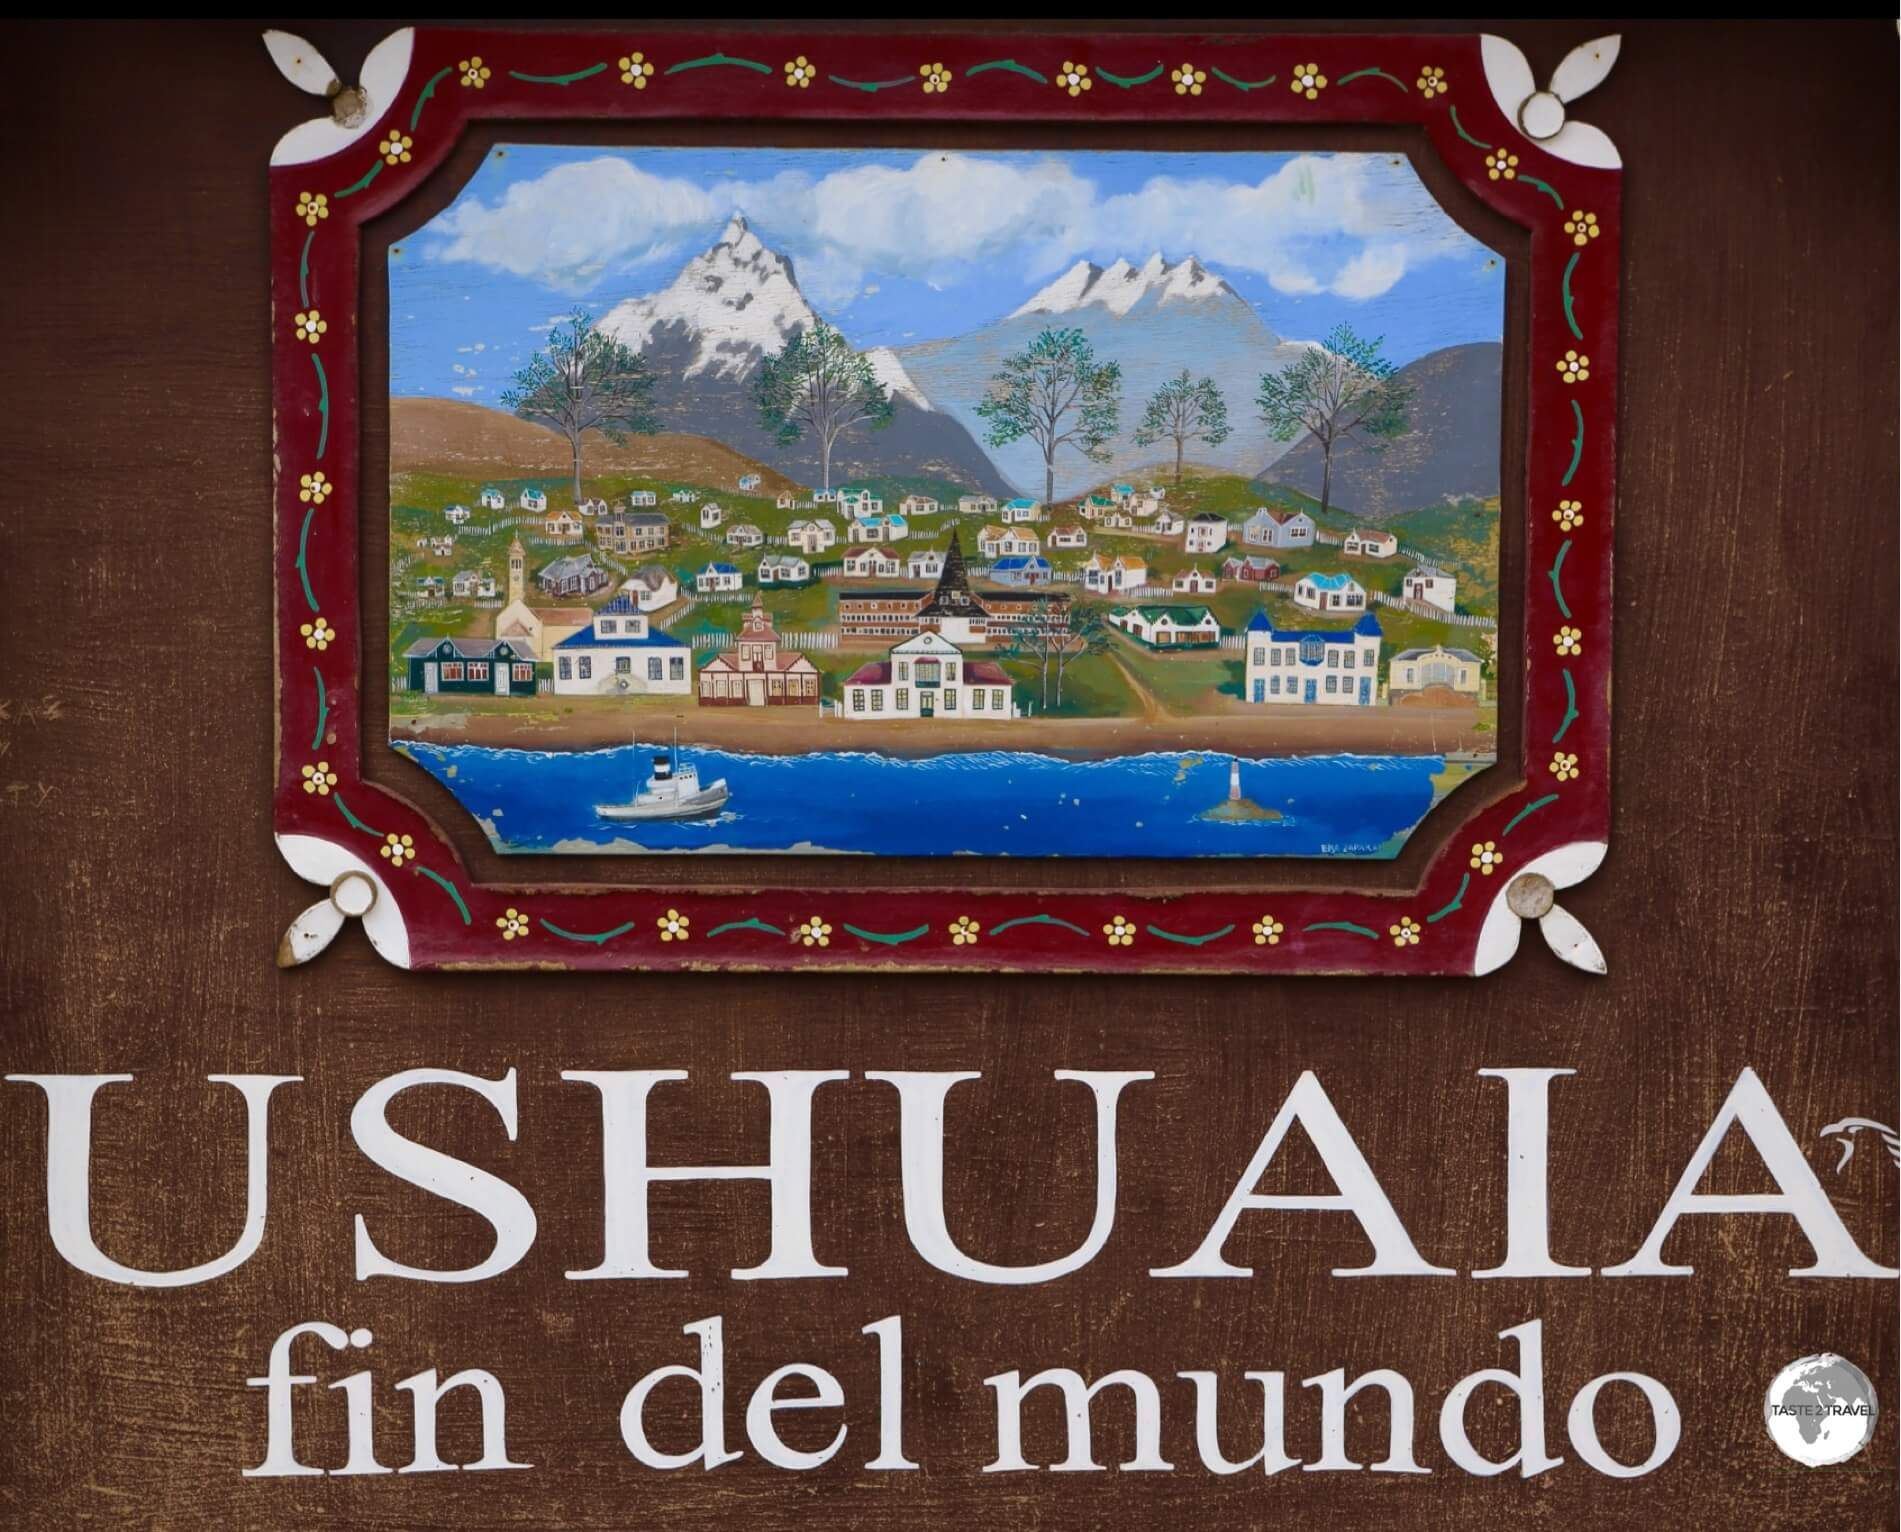 Located at 54 degrees South, Ushuaia is the most southern city in the world and, due to its close proximity to the southern continent - the departure point for boat trips to Antarctica.